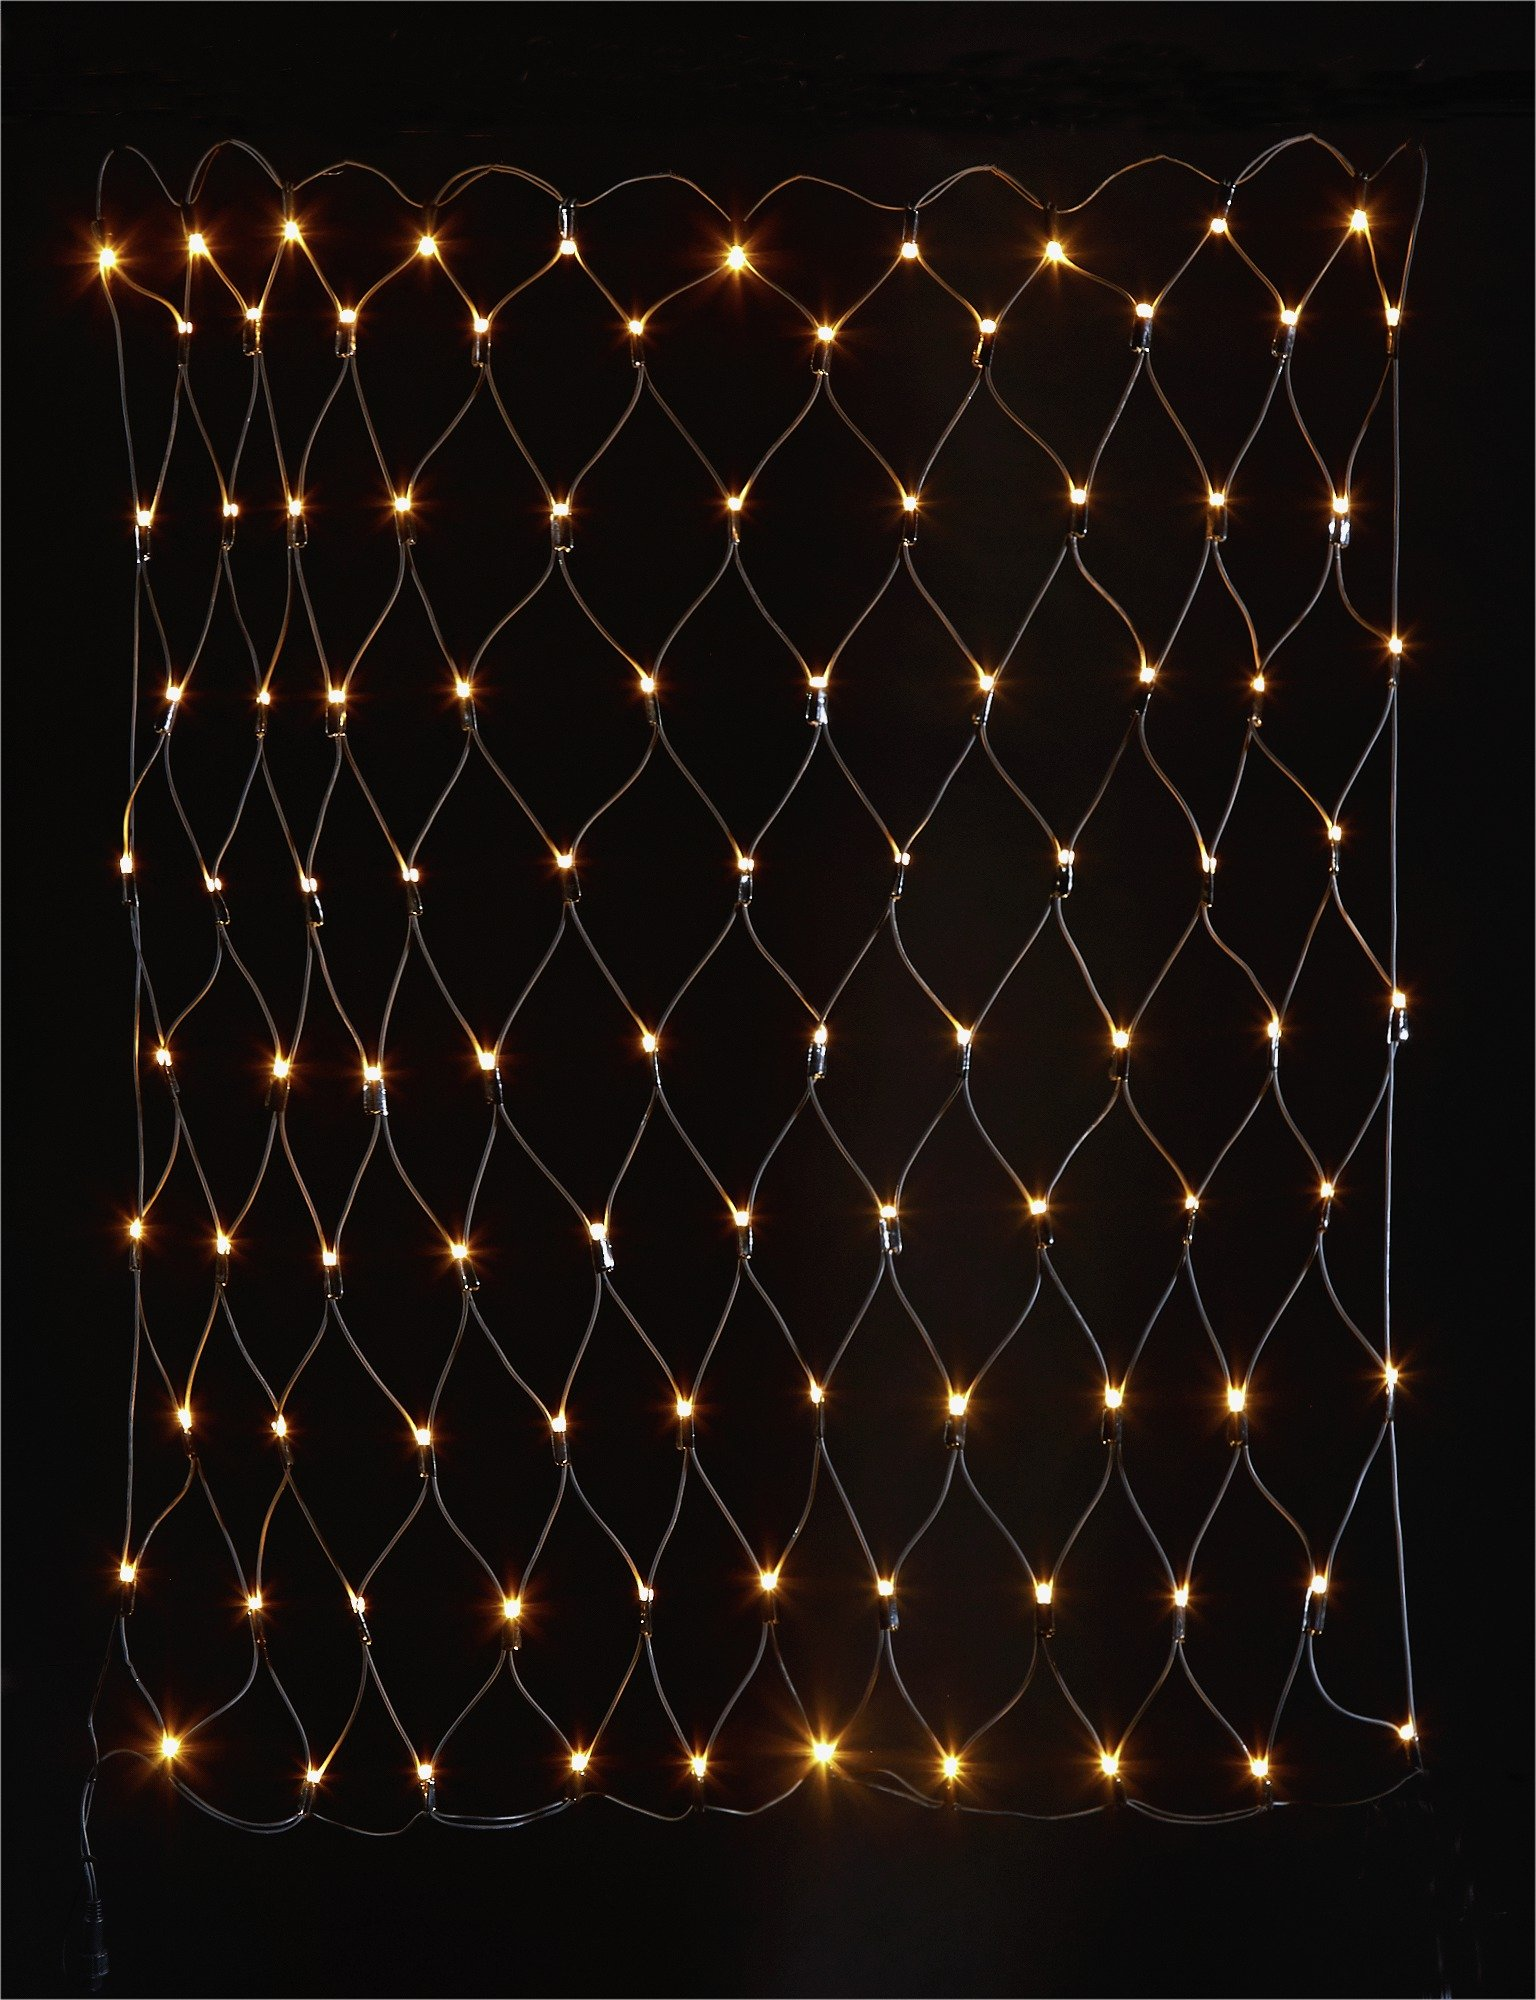 100 Net Connector Lights - Warm White